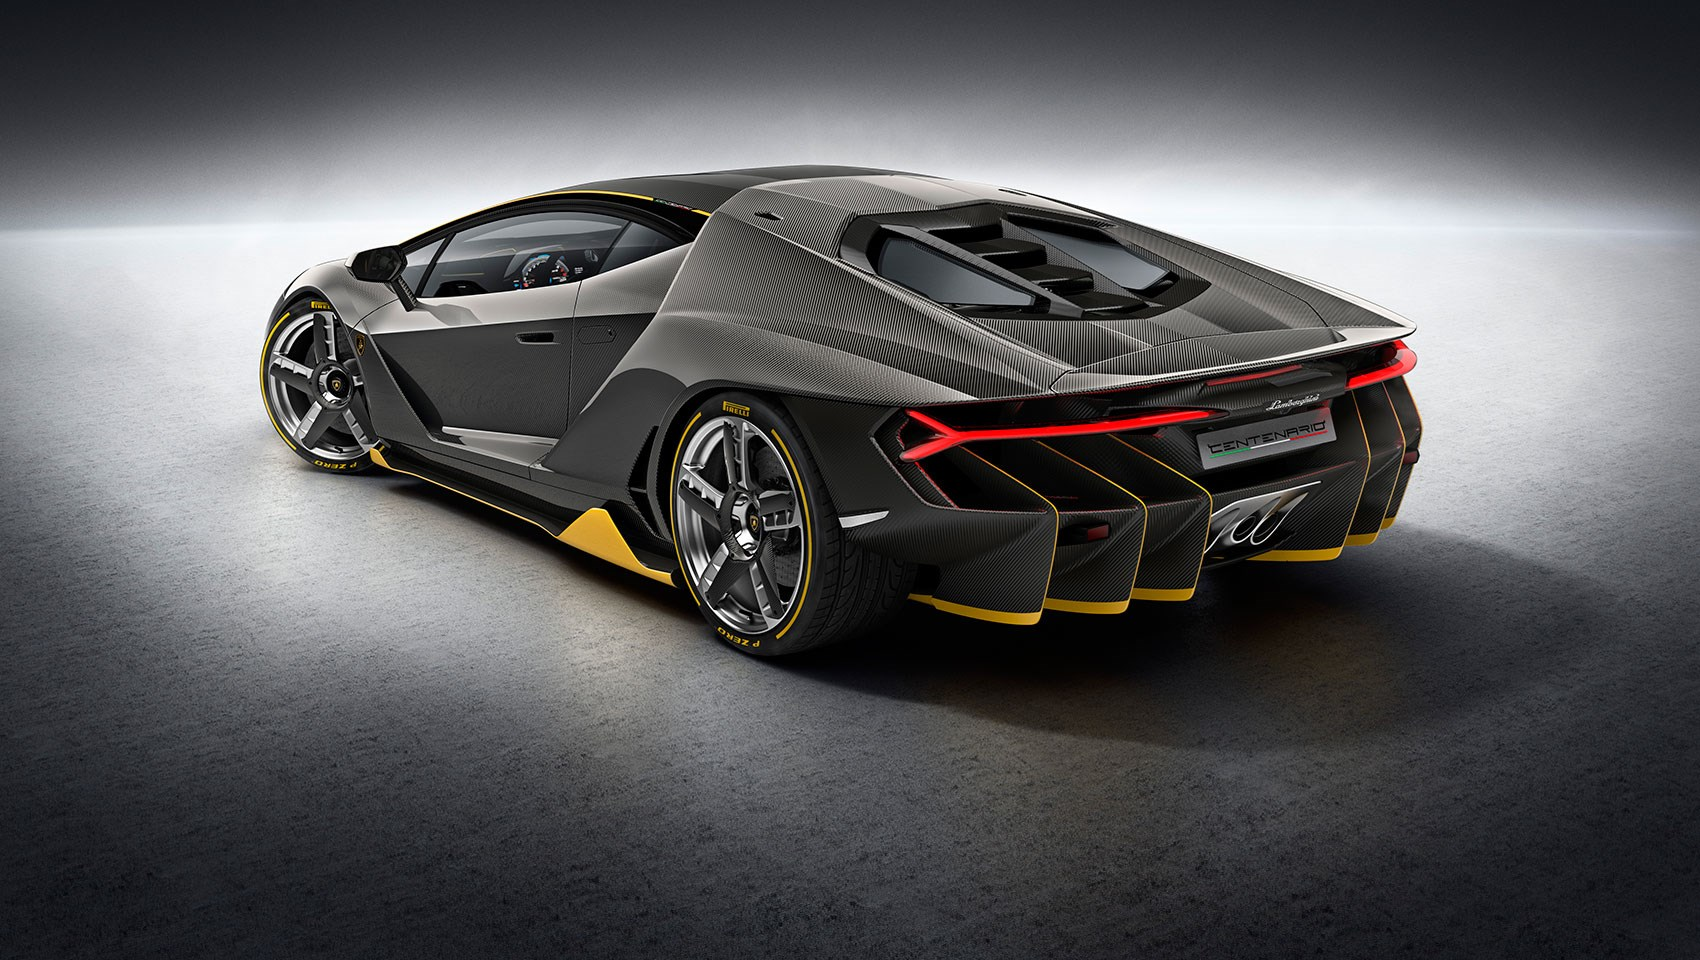 lamborghini aventador roadster release date with New Lamborghini Centenario Unveiled At The 2016 Geneva Motor Show on New Lamborghini Centenario Unveiled At The 2016 Geneva Motor Show in addition Pink Cars Wallpaper further 2017 Ferrari Laferrari Aperta further Pink Car Wallpaper besides 2017 Lamborghini Aventador Aggressive Facelift Spied.